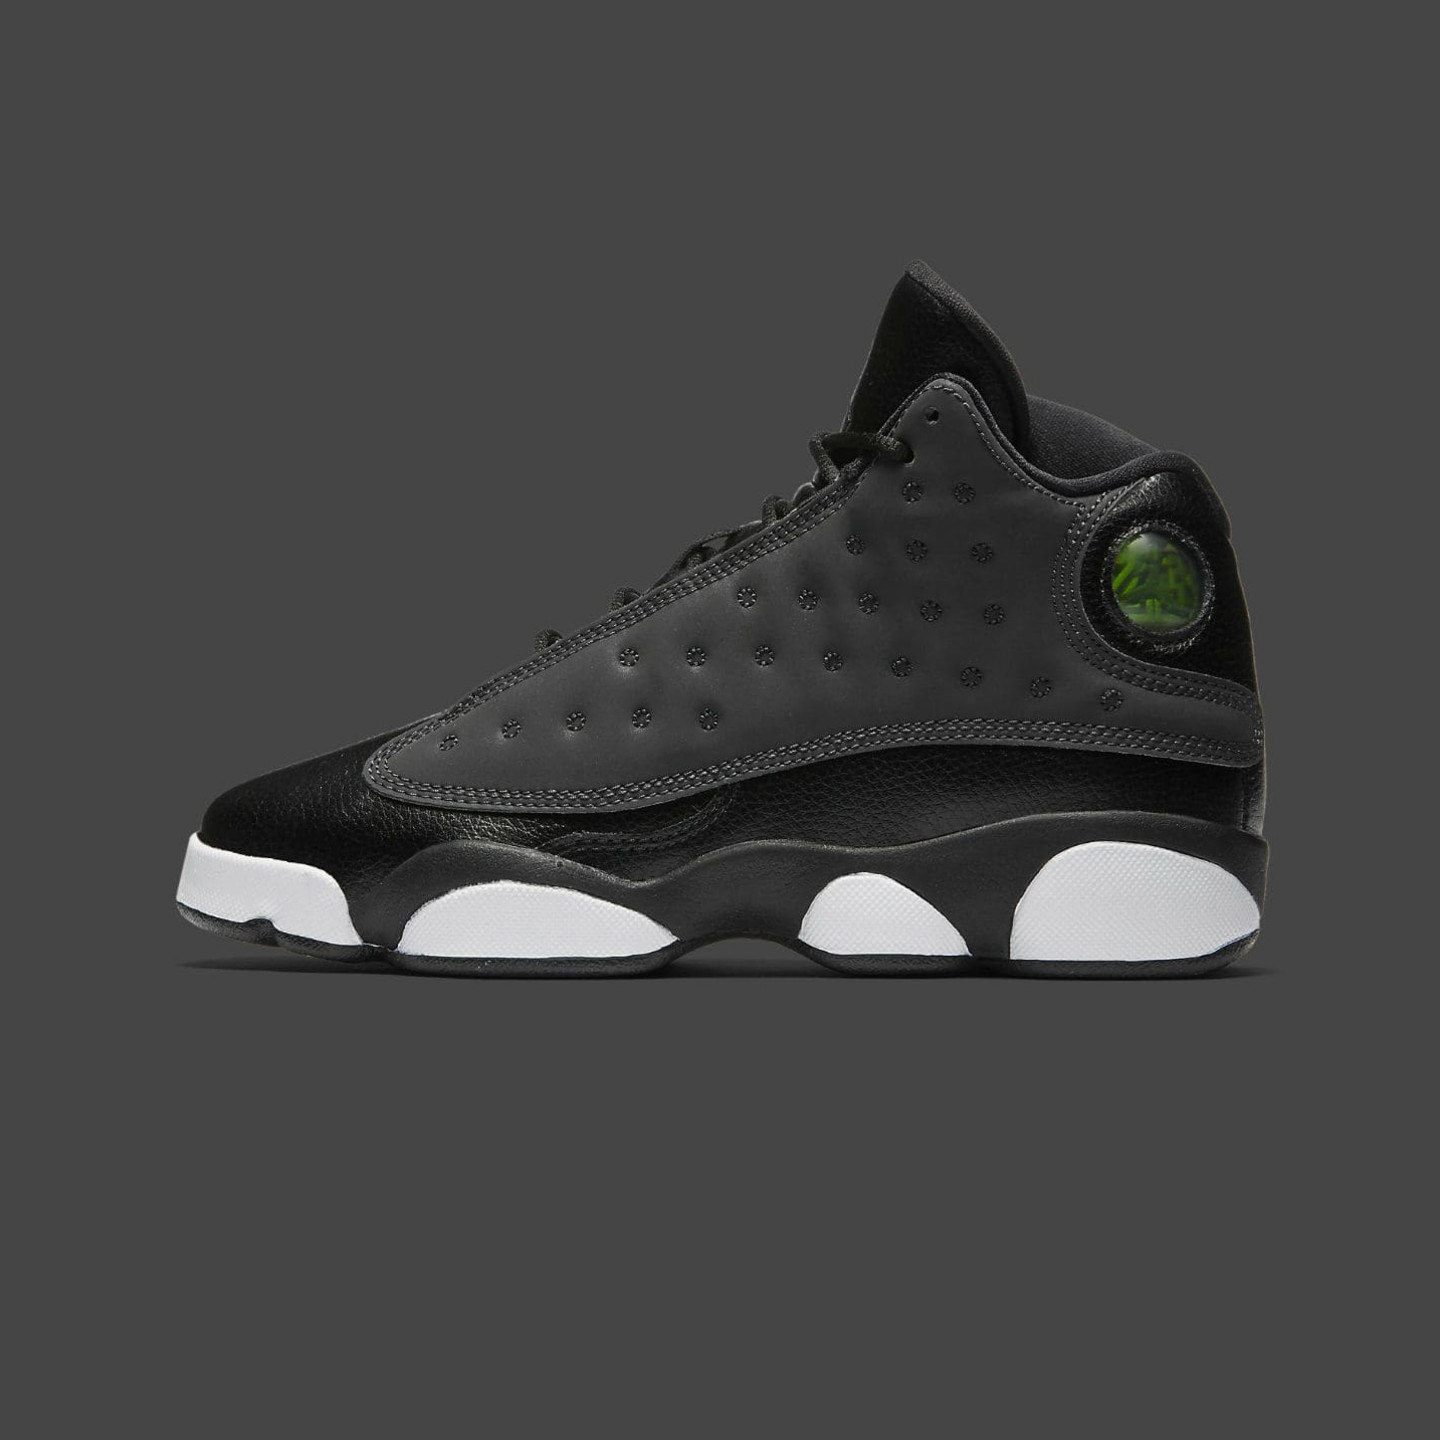 Jordan Air Jordan 13 Retro GS Anthracite / Black / Hyper Pink 439358-009-40